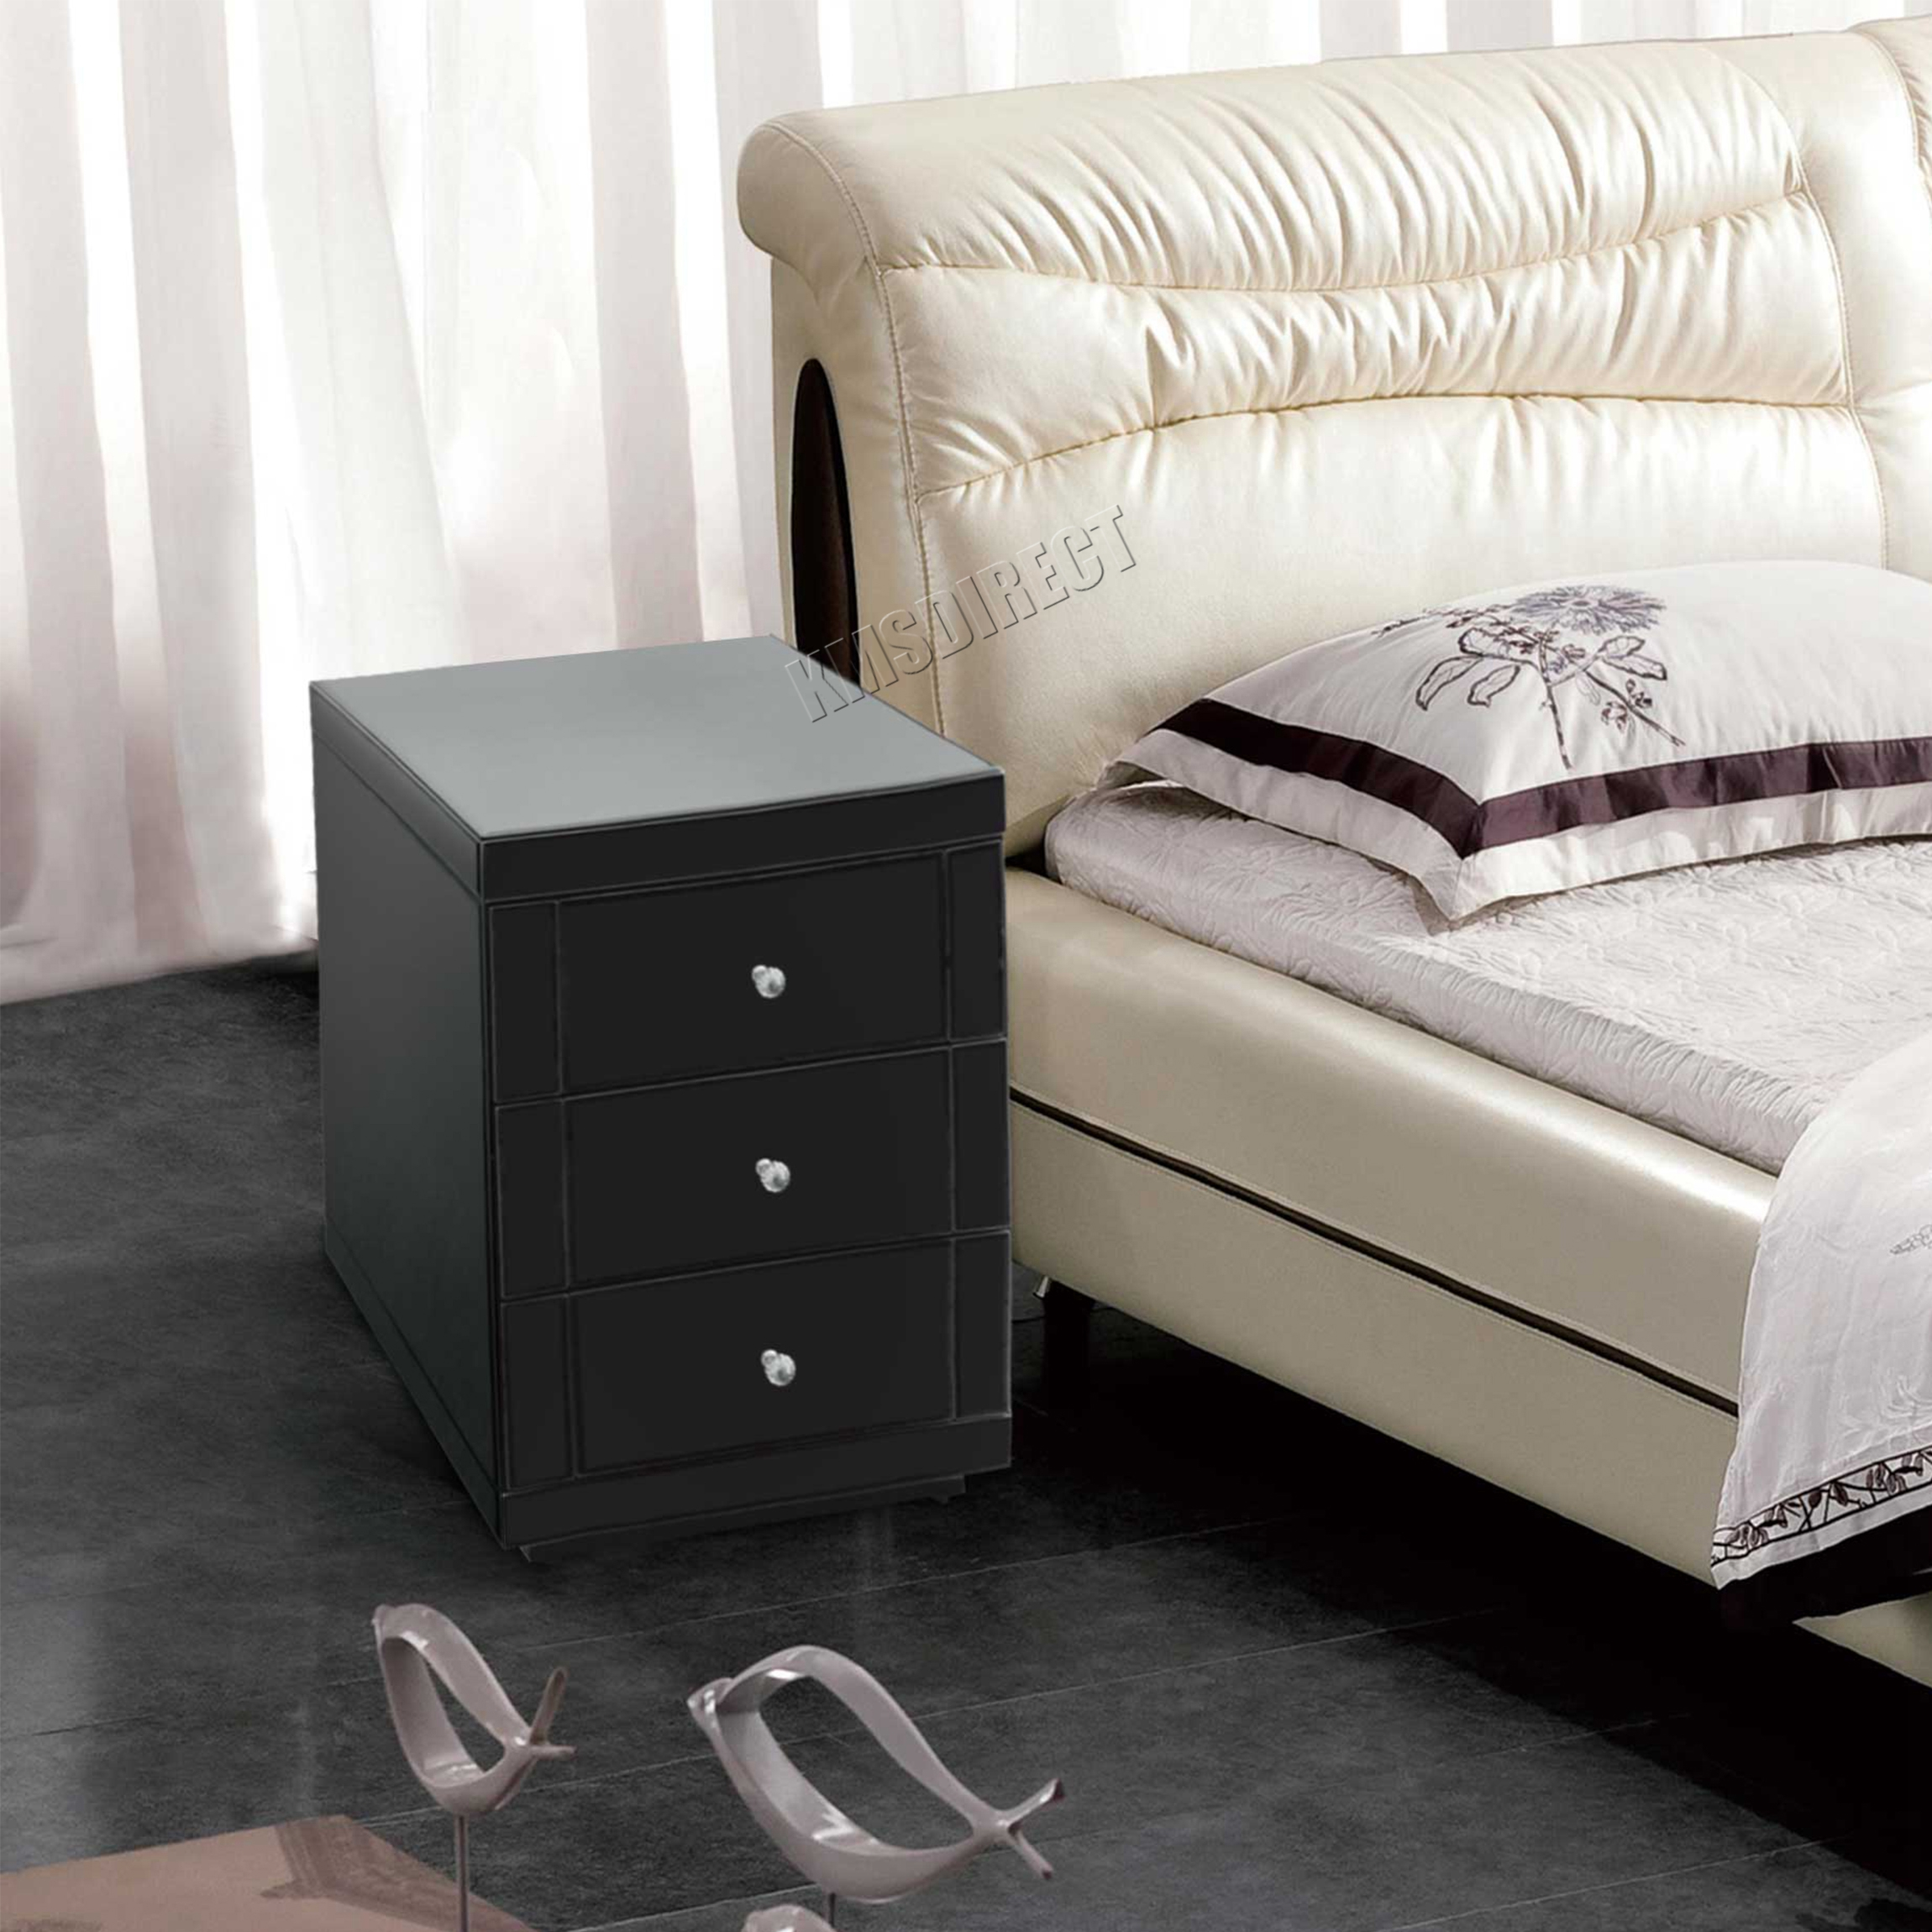 Mirror Furniture Bedroom Foxhunter Mirrored Furniture Glass Bedside Cabinet Table With